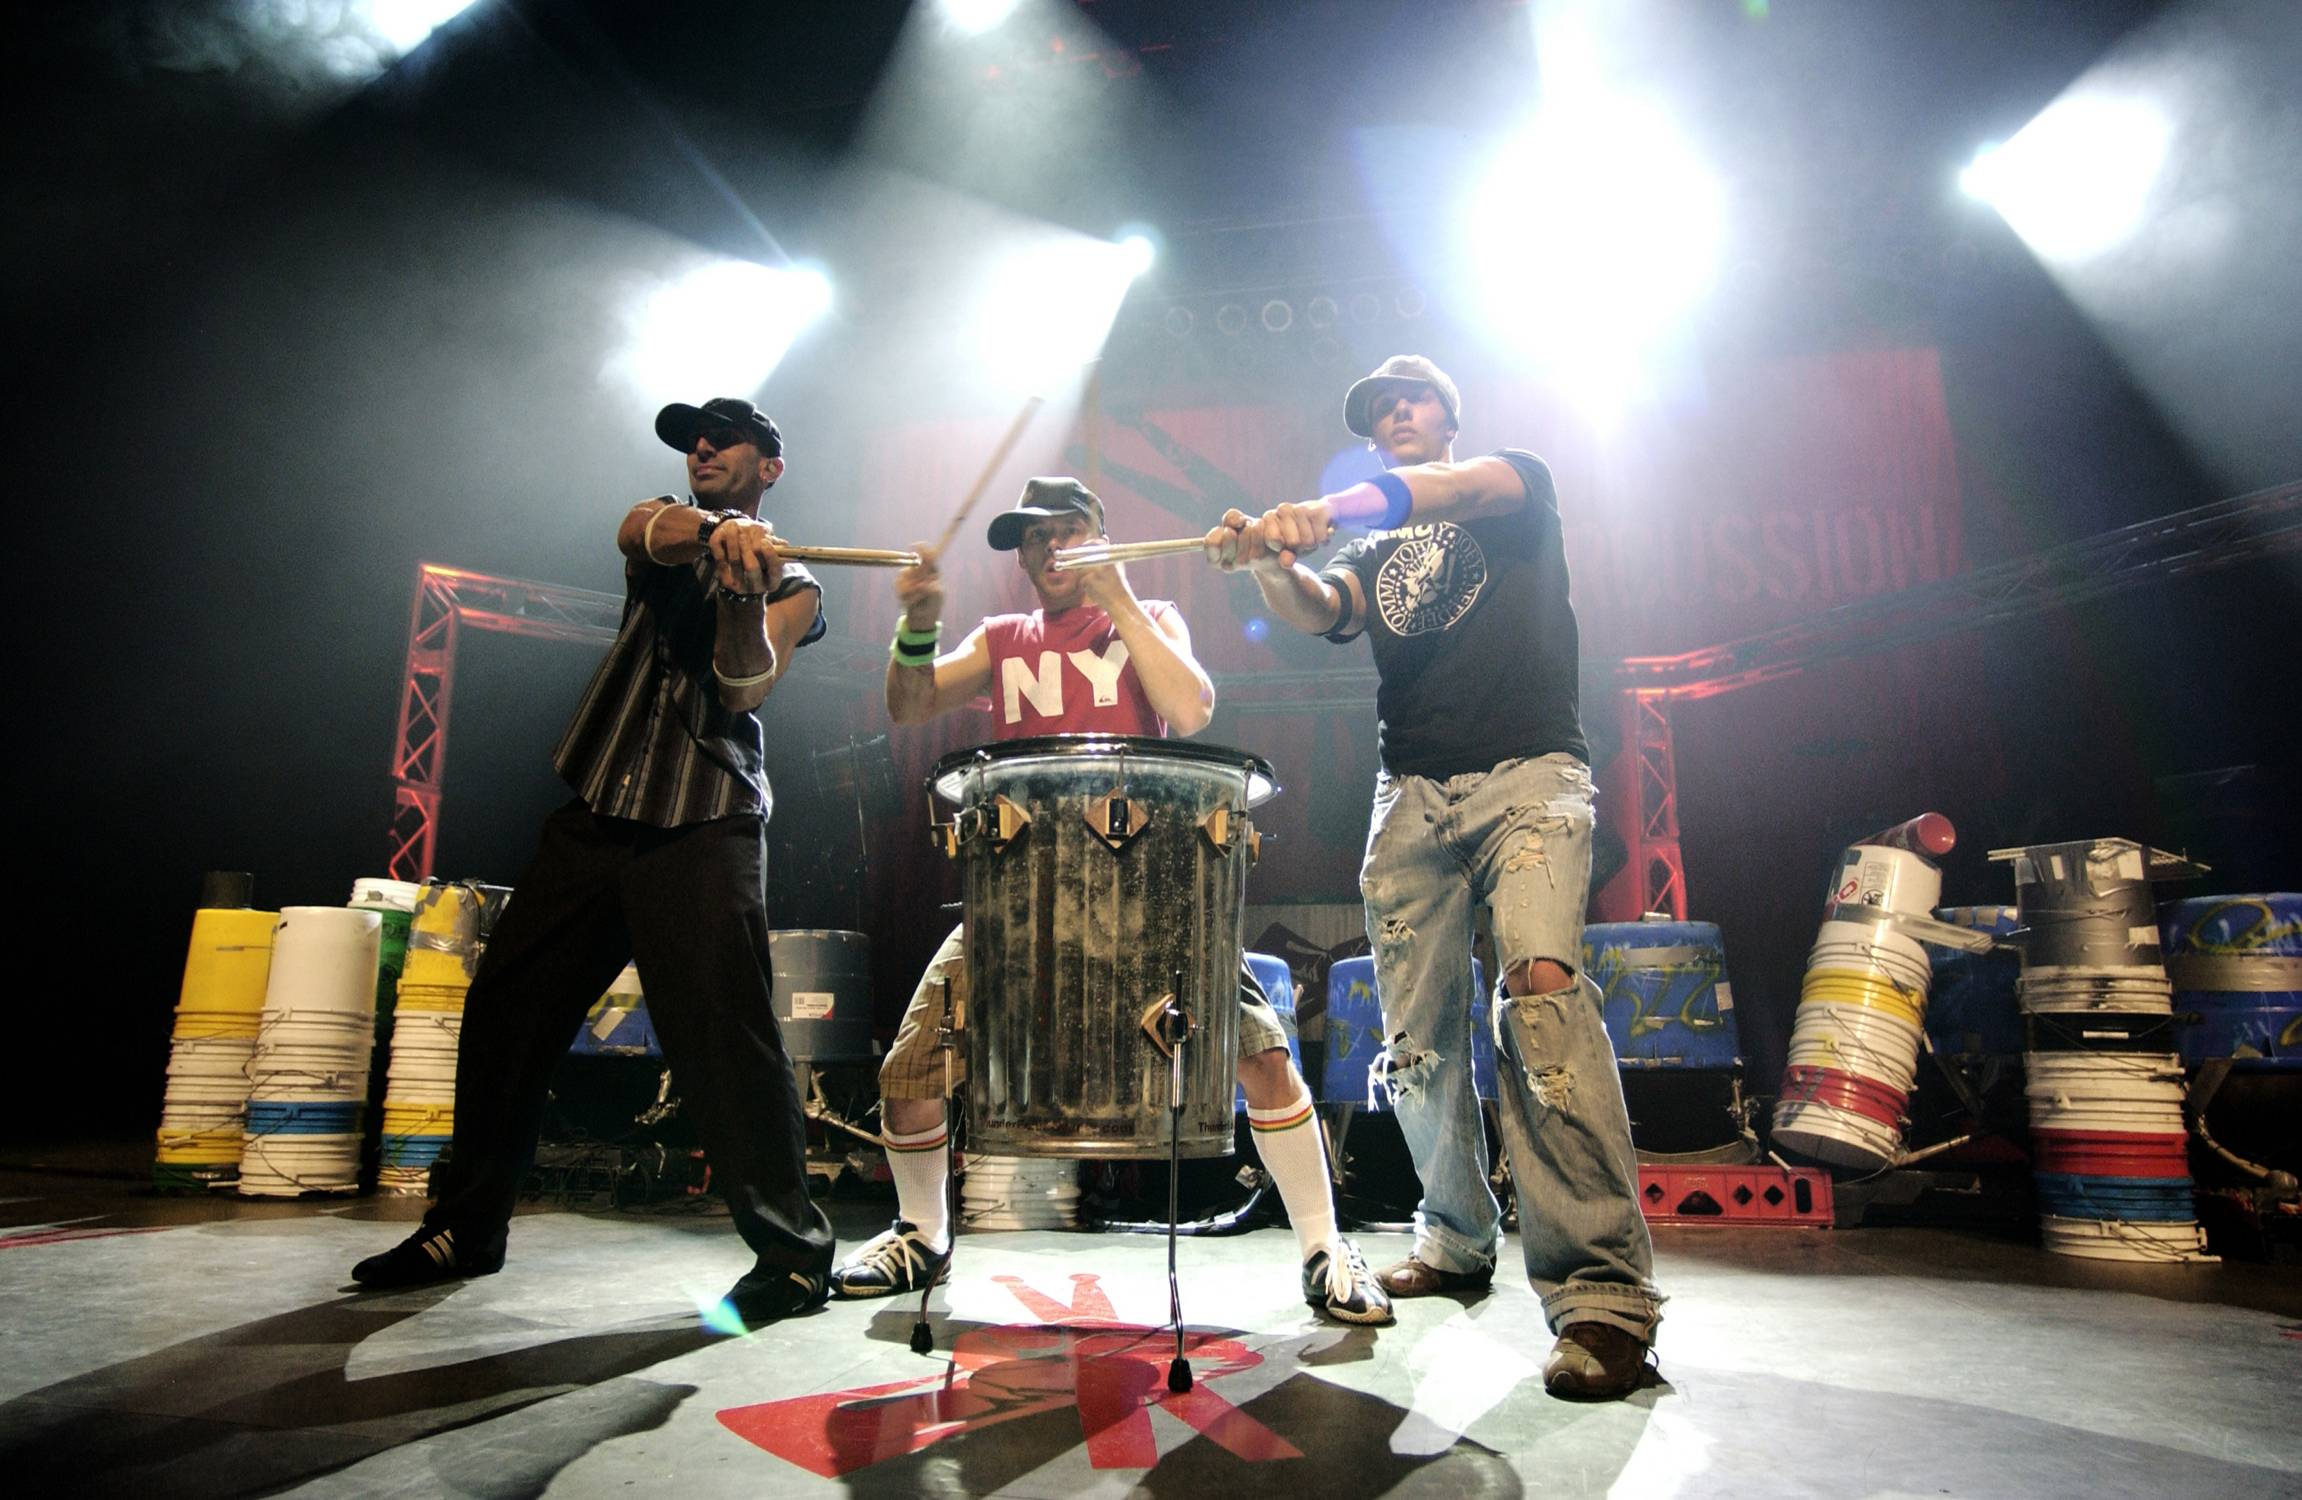 - RecycledPercussion20061